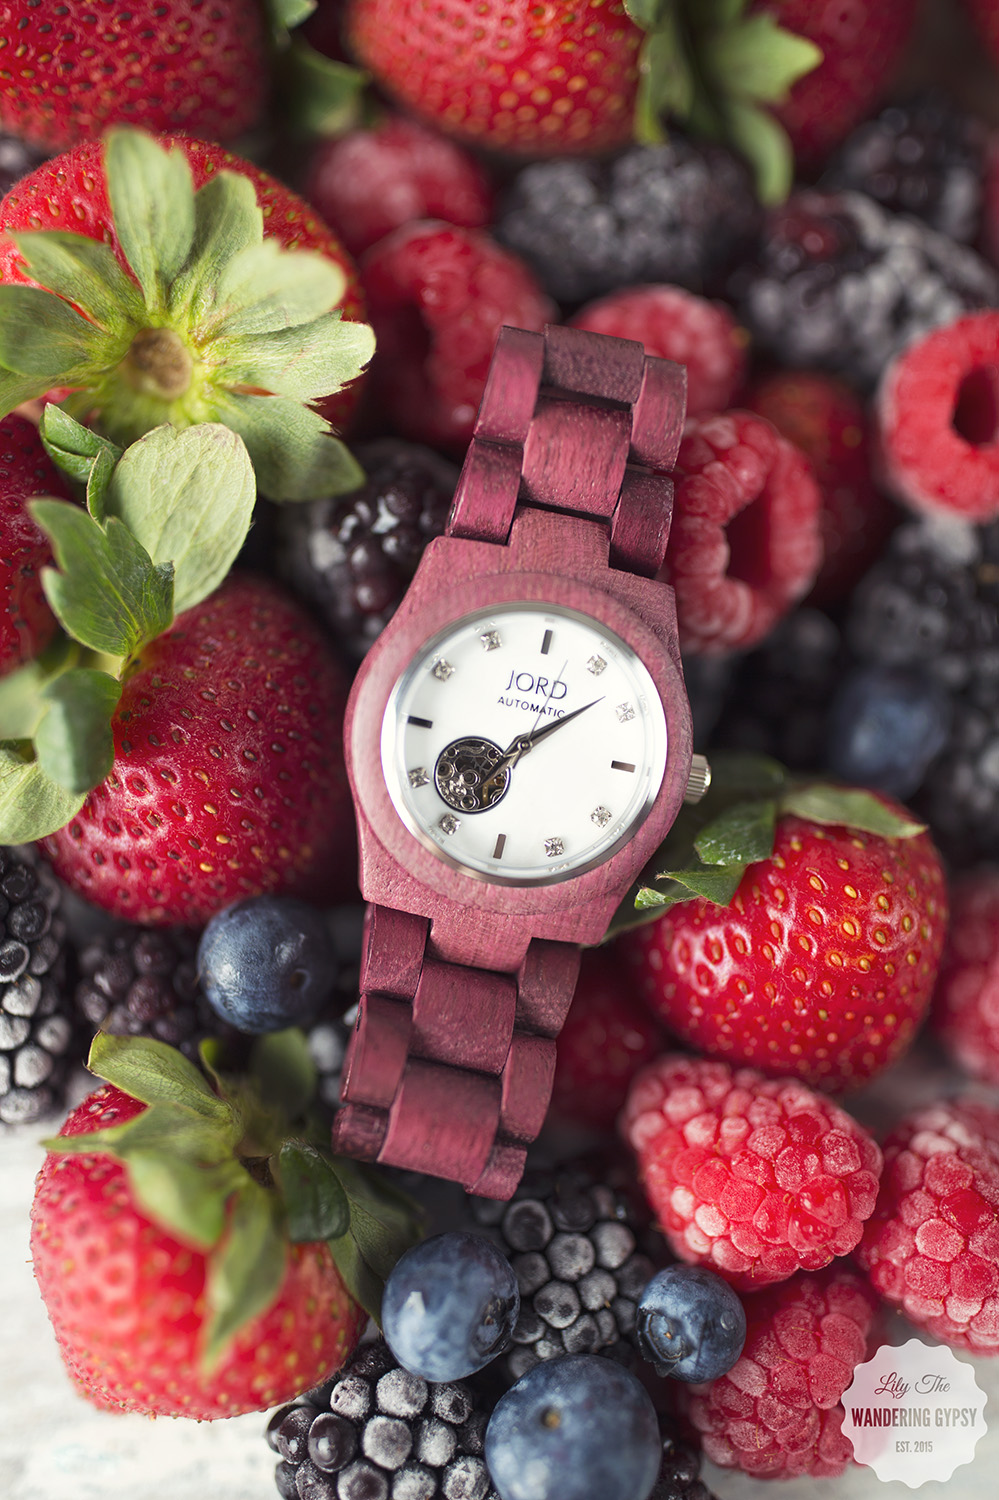 The Cora Watch - Click Here To Shop